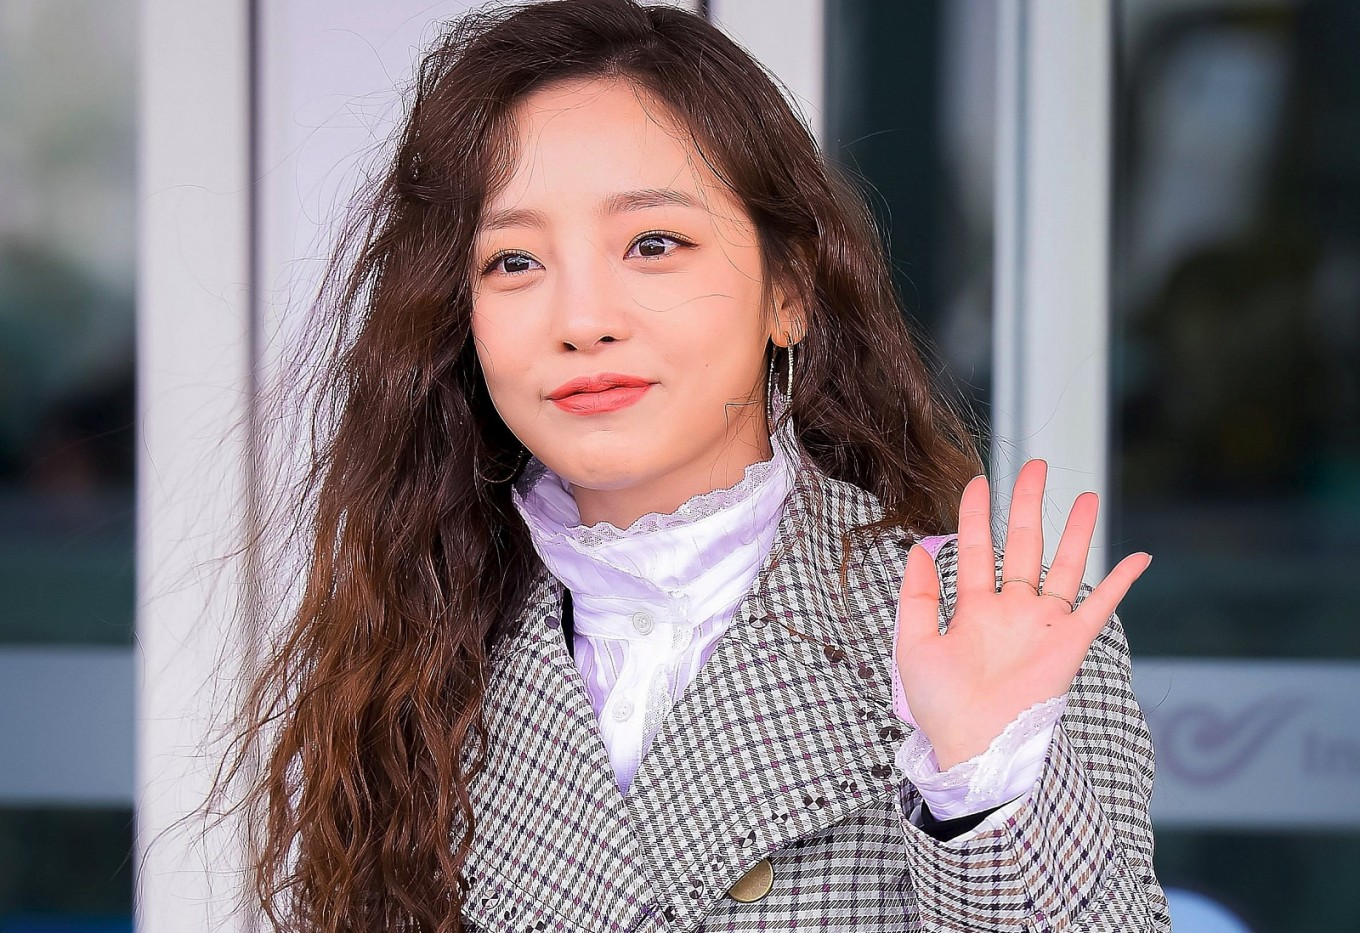 Late Goo Hara left 'despairing note': Police